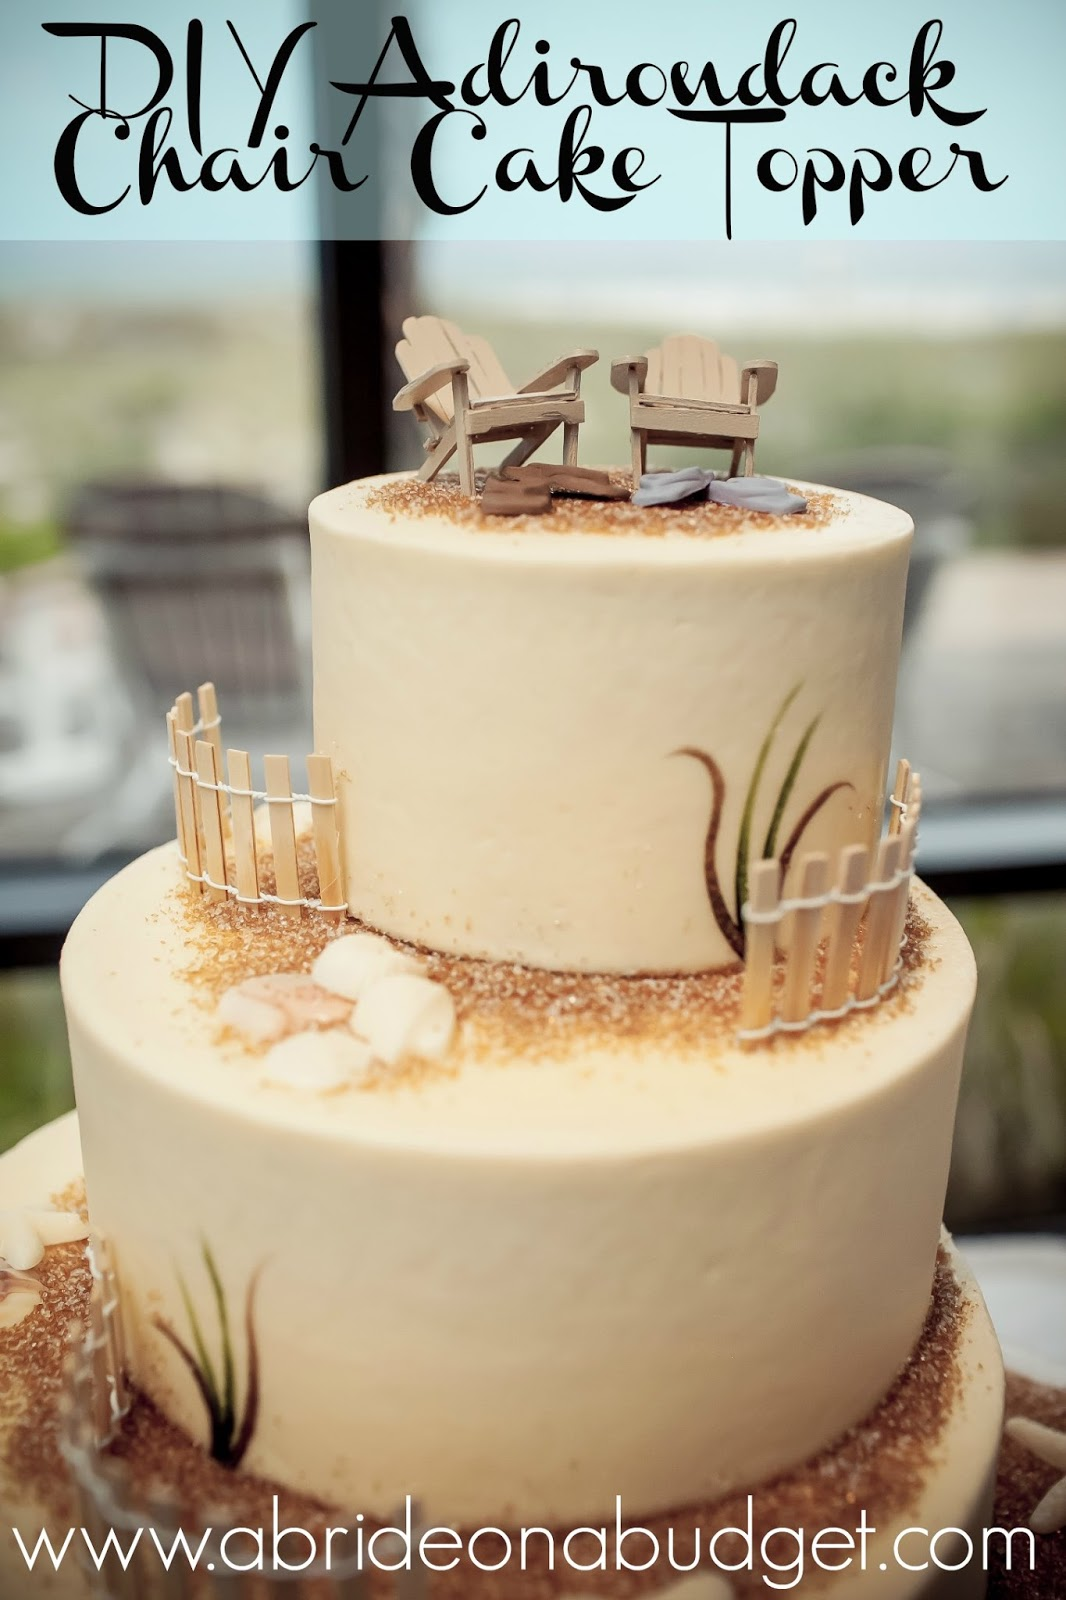 Planning A Beach Wedding Youll Want To Make This DIY Adirondack Chair Cake